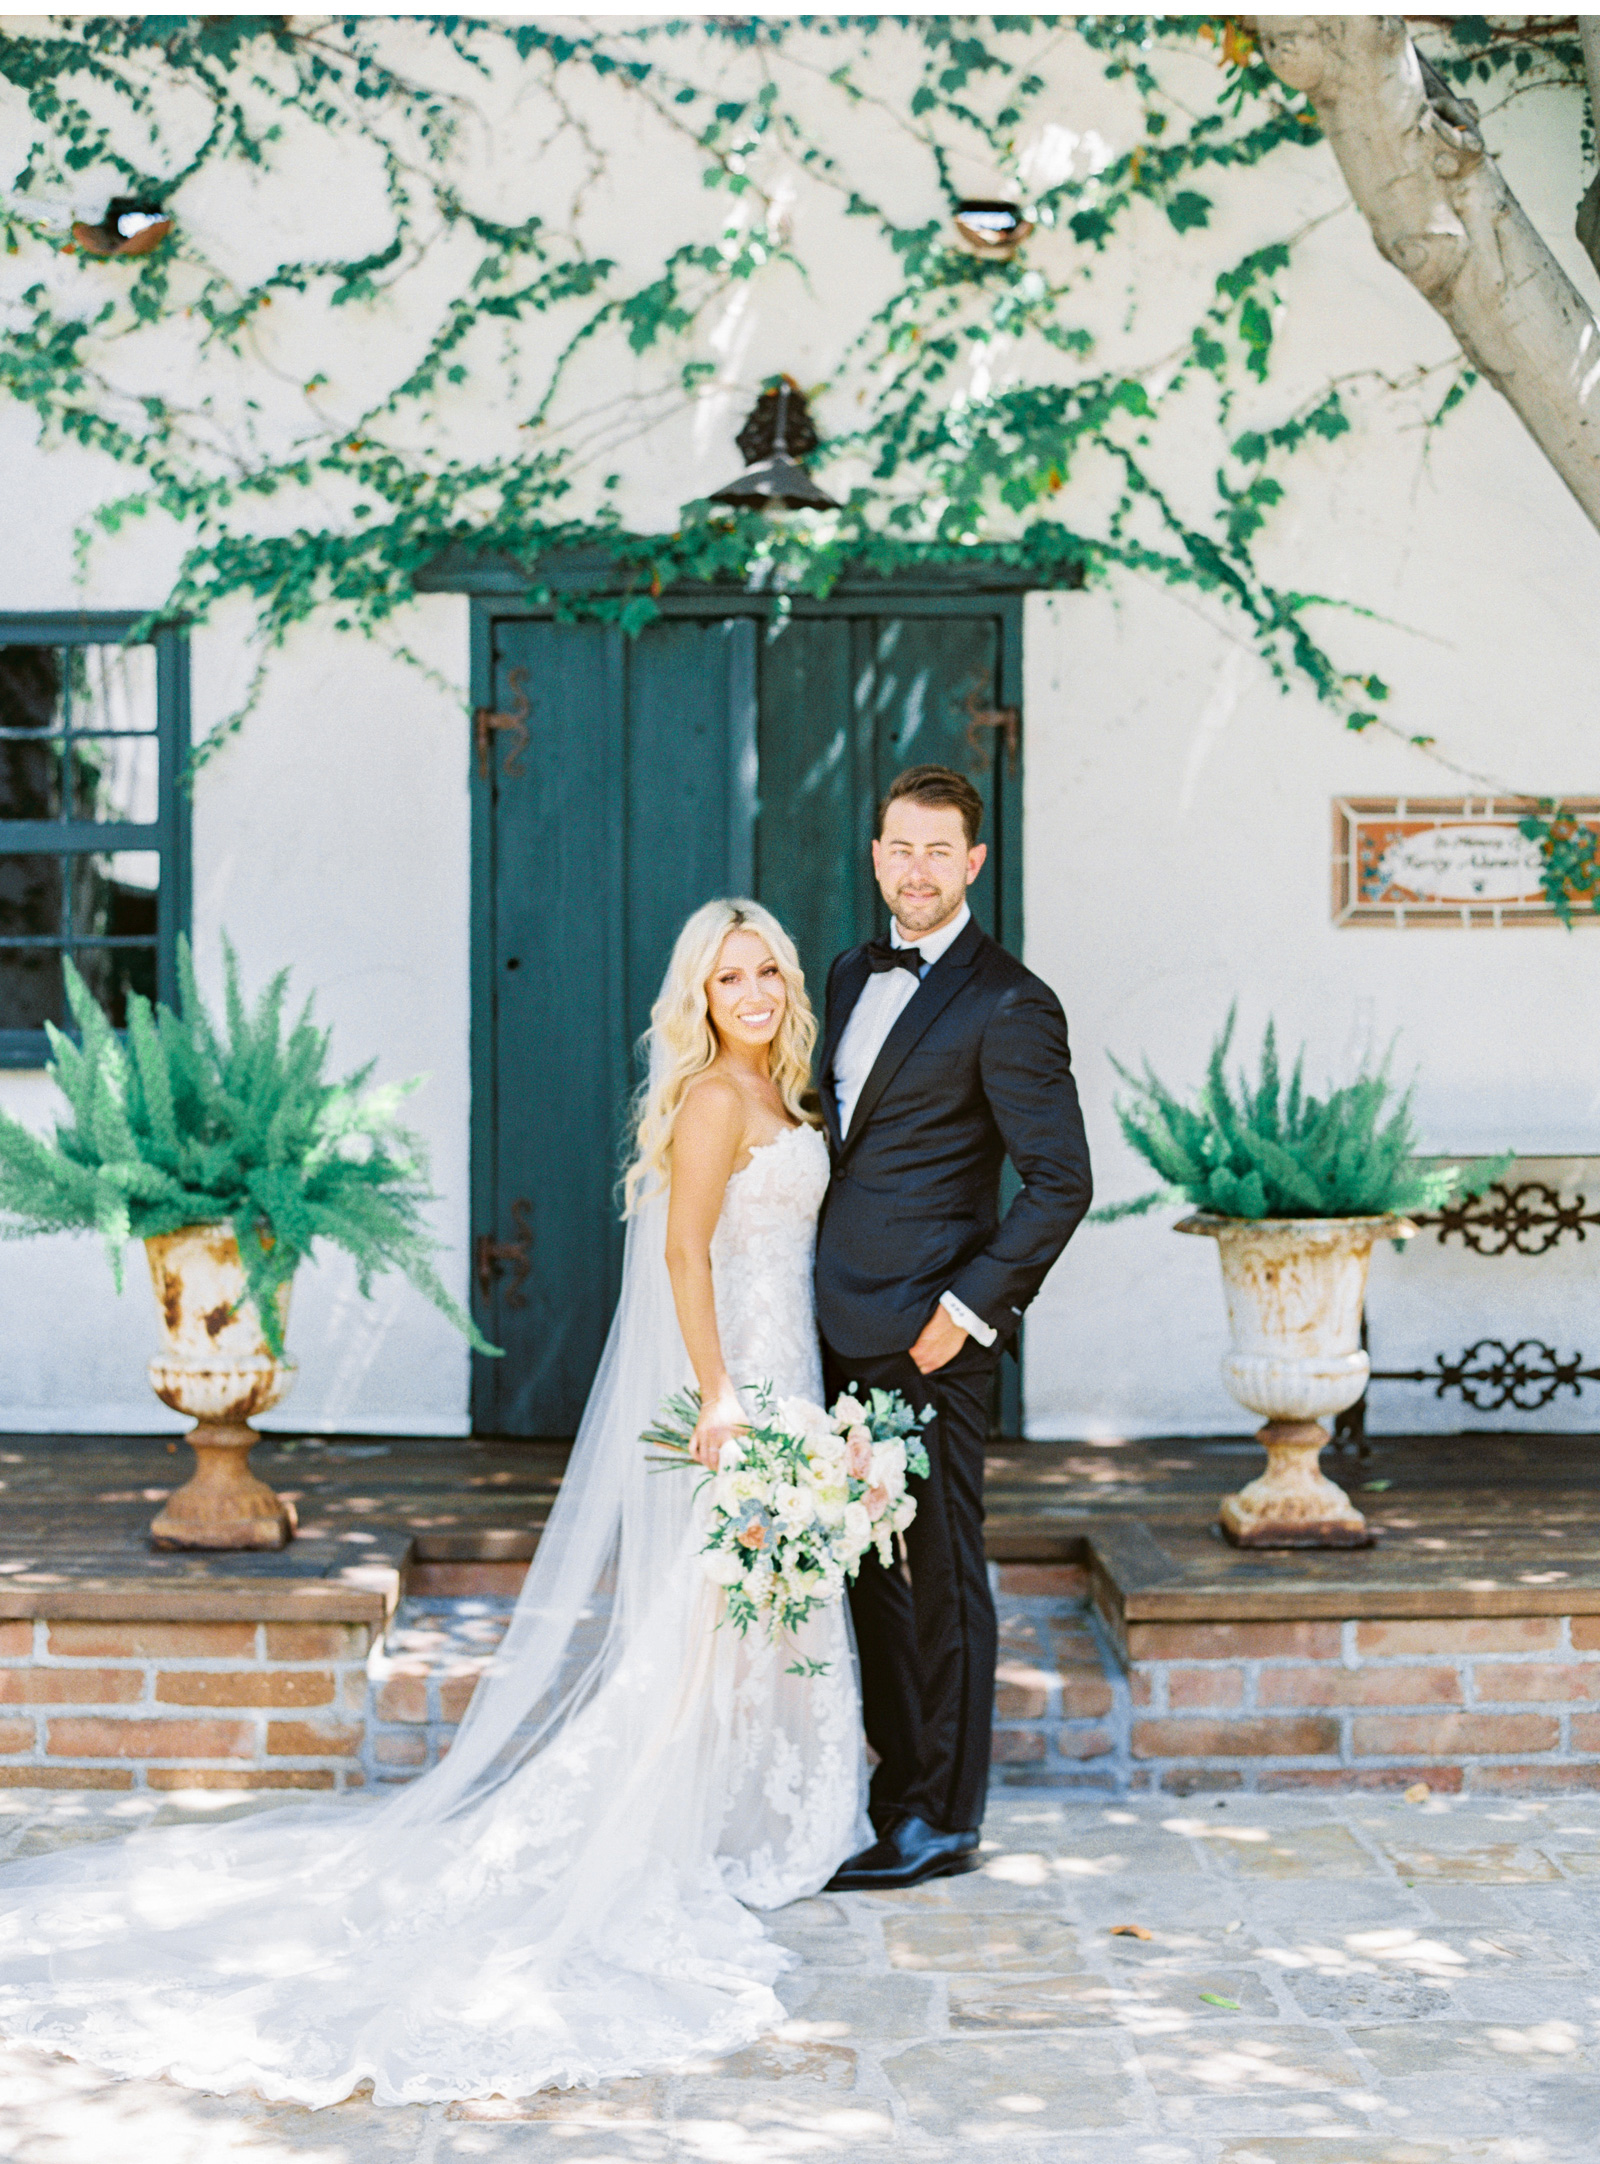 San-Juan-Capistrano-Wedding-Photographer-Southern-California-Wedding-Venues-Malibu-Wedding-Photographer-Natalie-Schutt-Photography_10.jpg